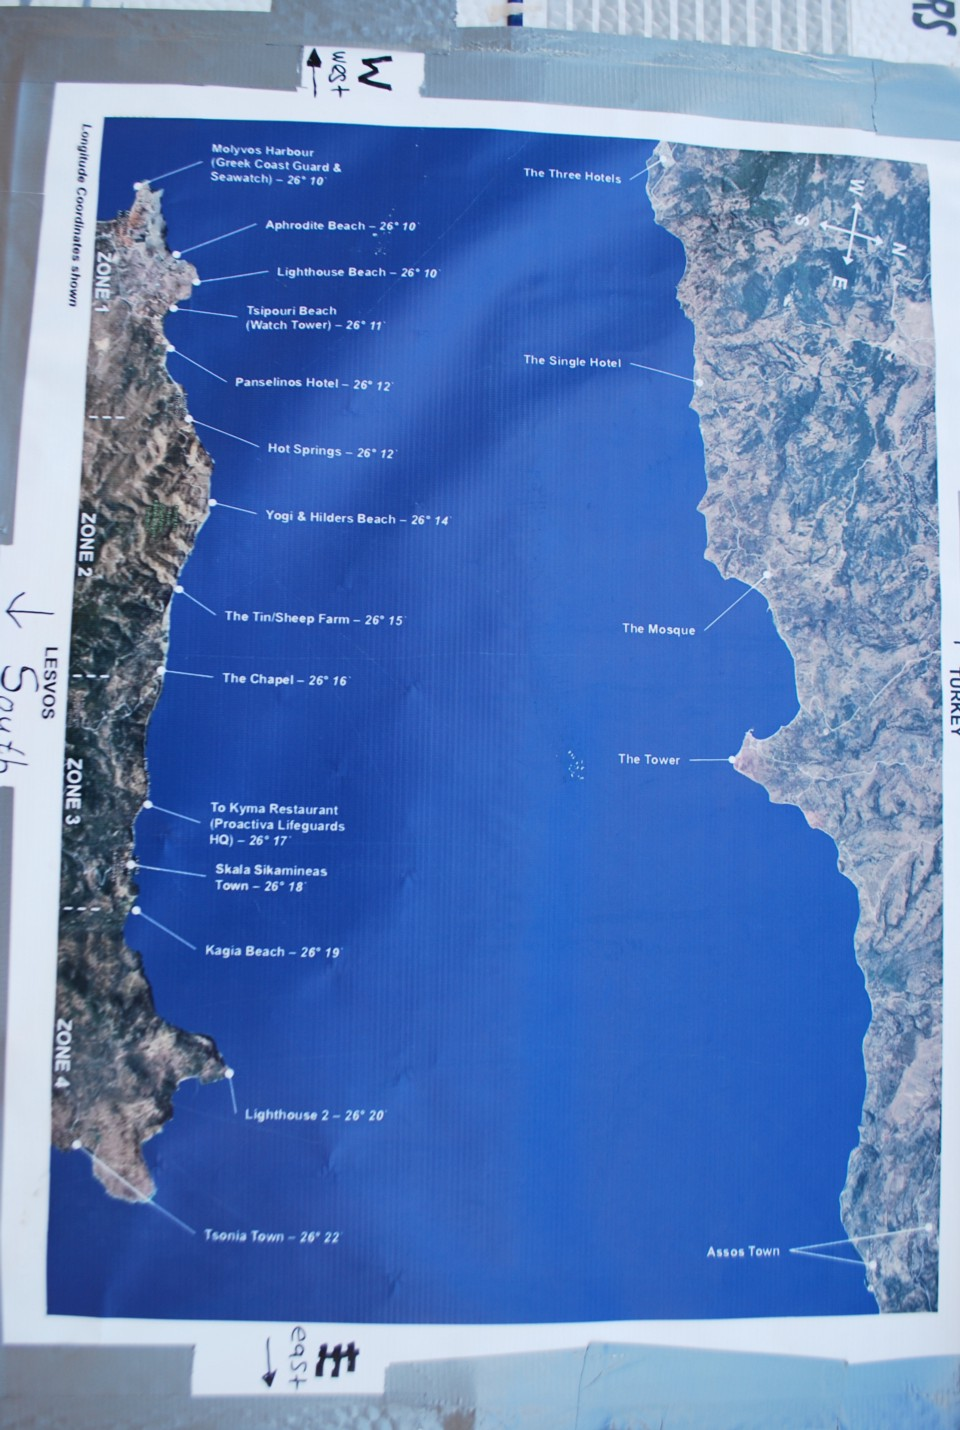 The map of Turkish and Greek coasts, with longitude and latitude coordinates